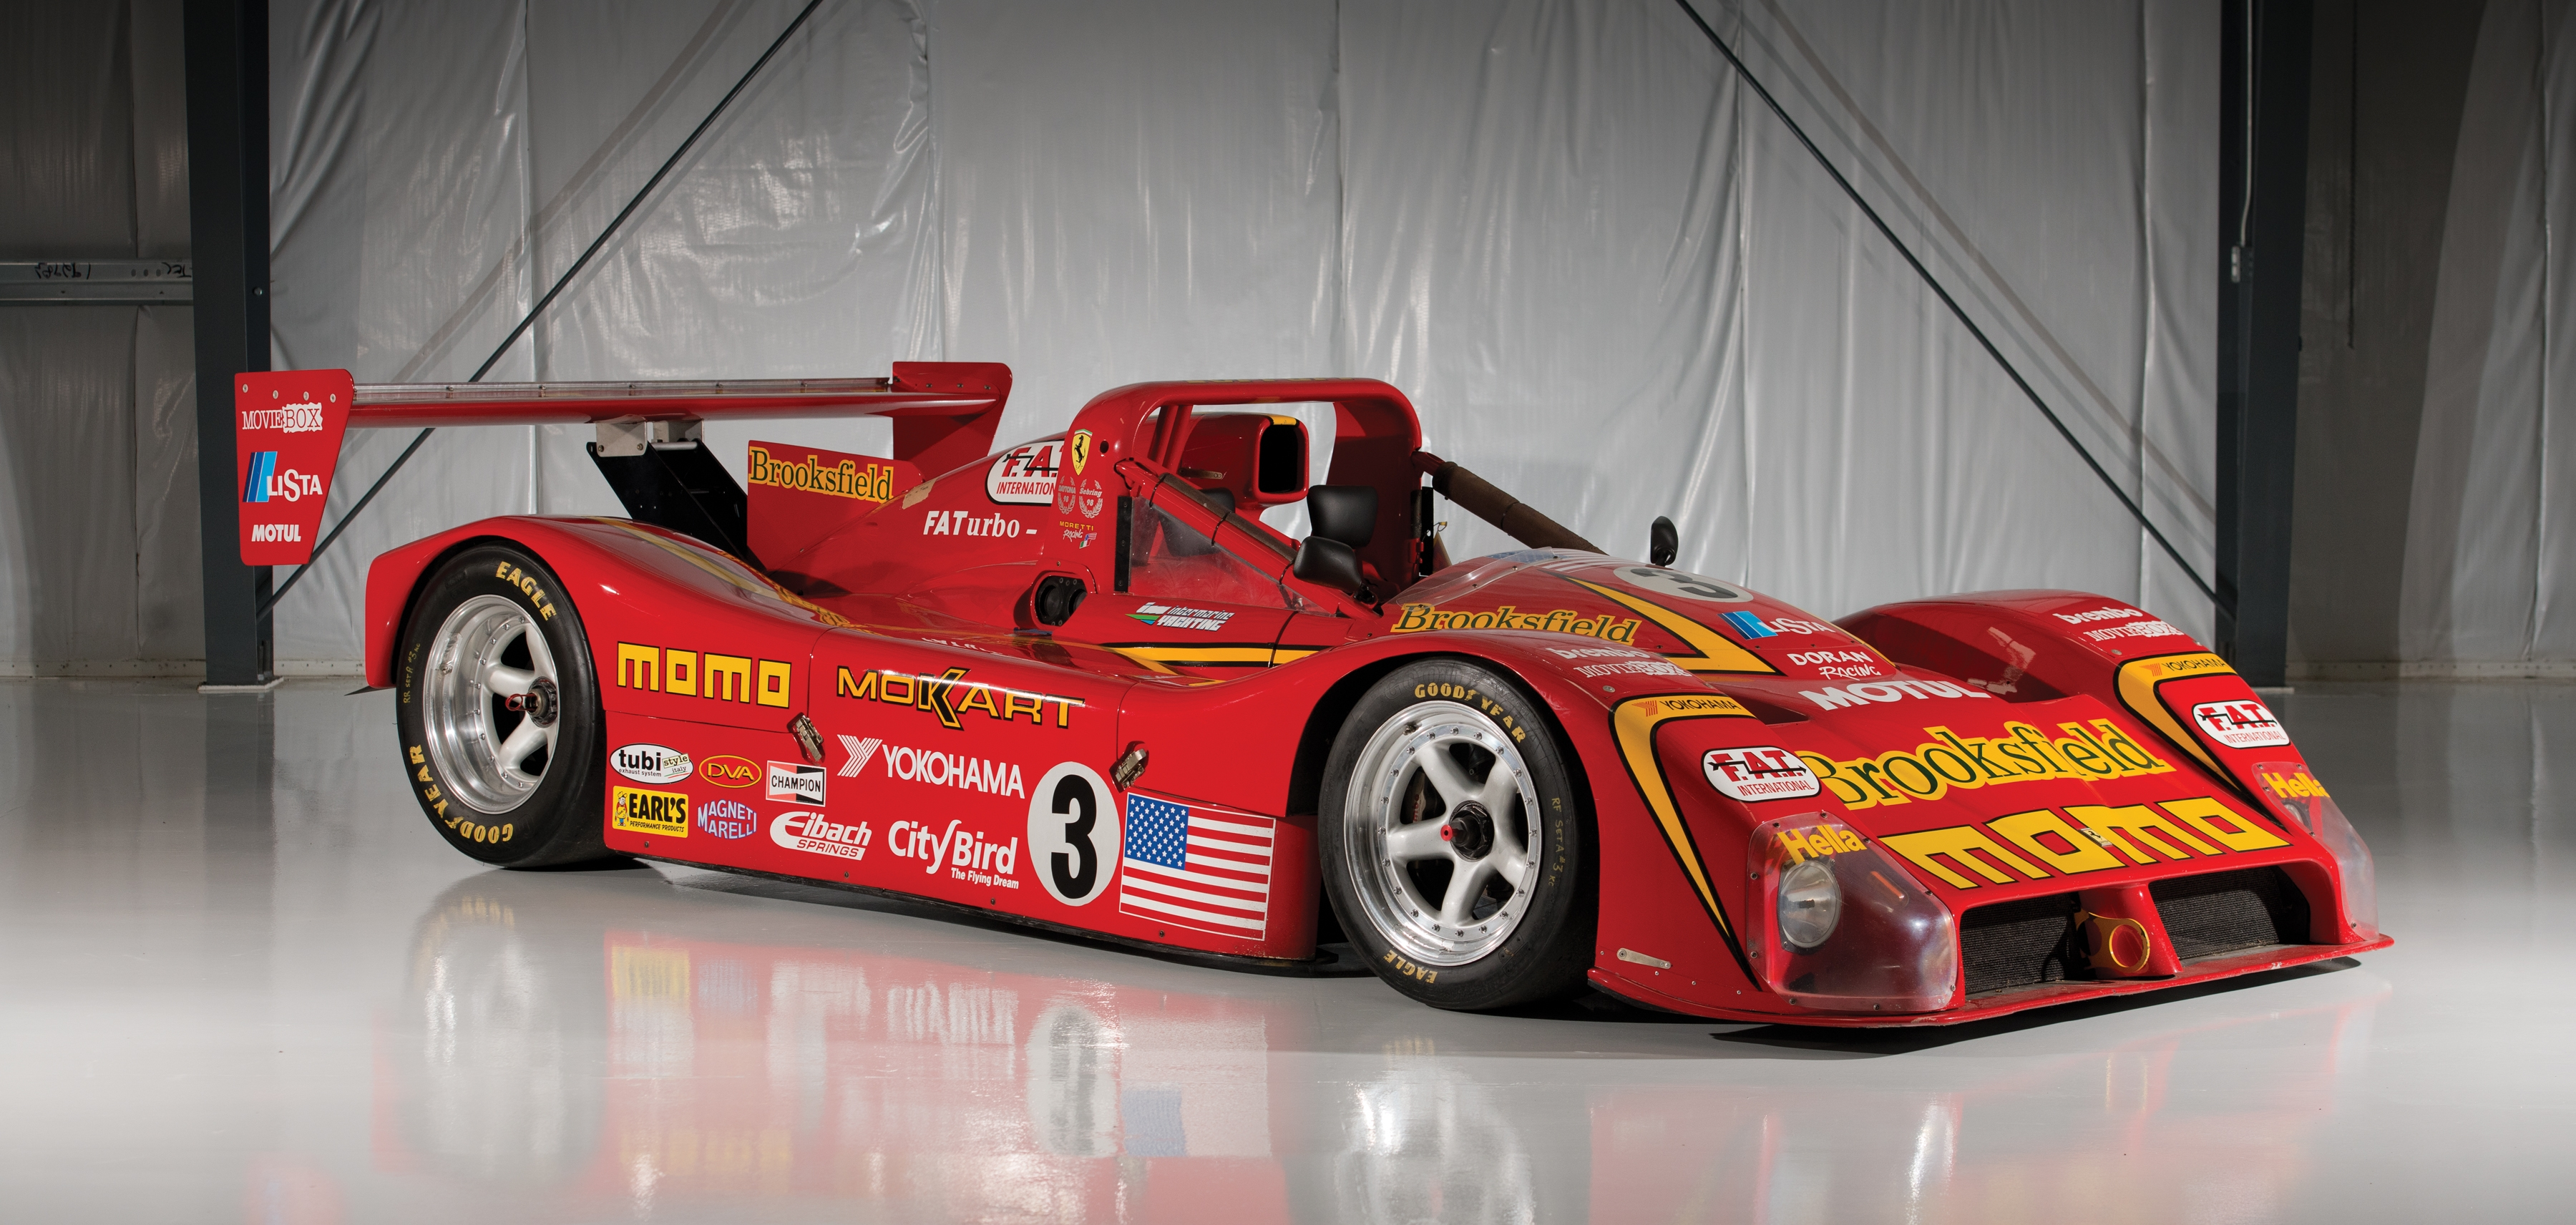 Ferrari 333 Sp Latest News Reviews Specifications Prices Photos And Videos Top Speed